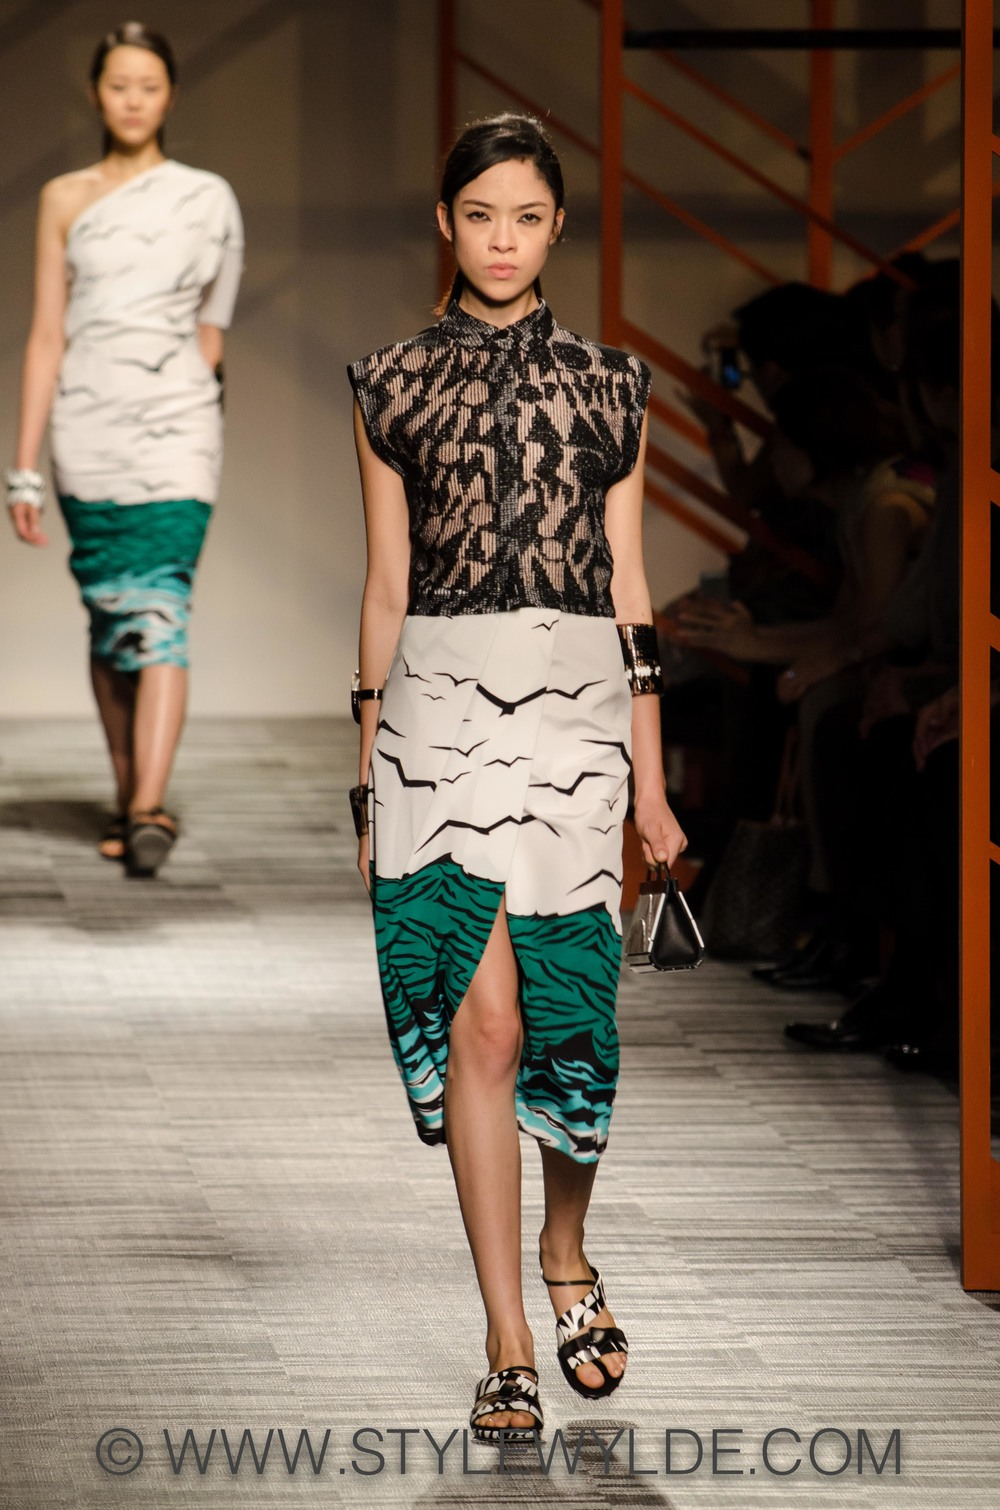 STYLEWYLDE_Missoni_SS2014 (1 of 1)-3.jpg